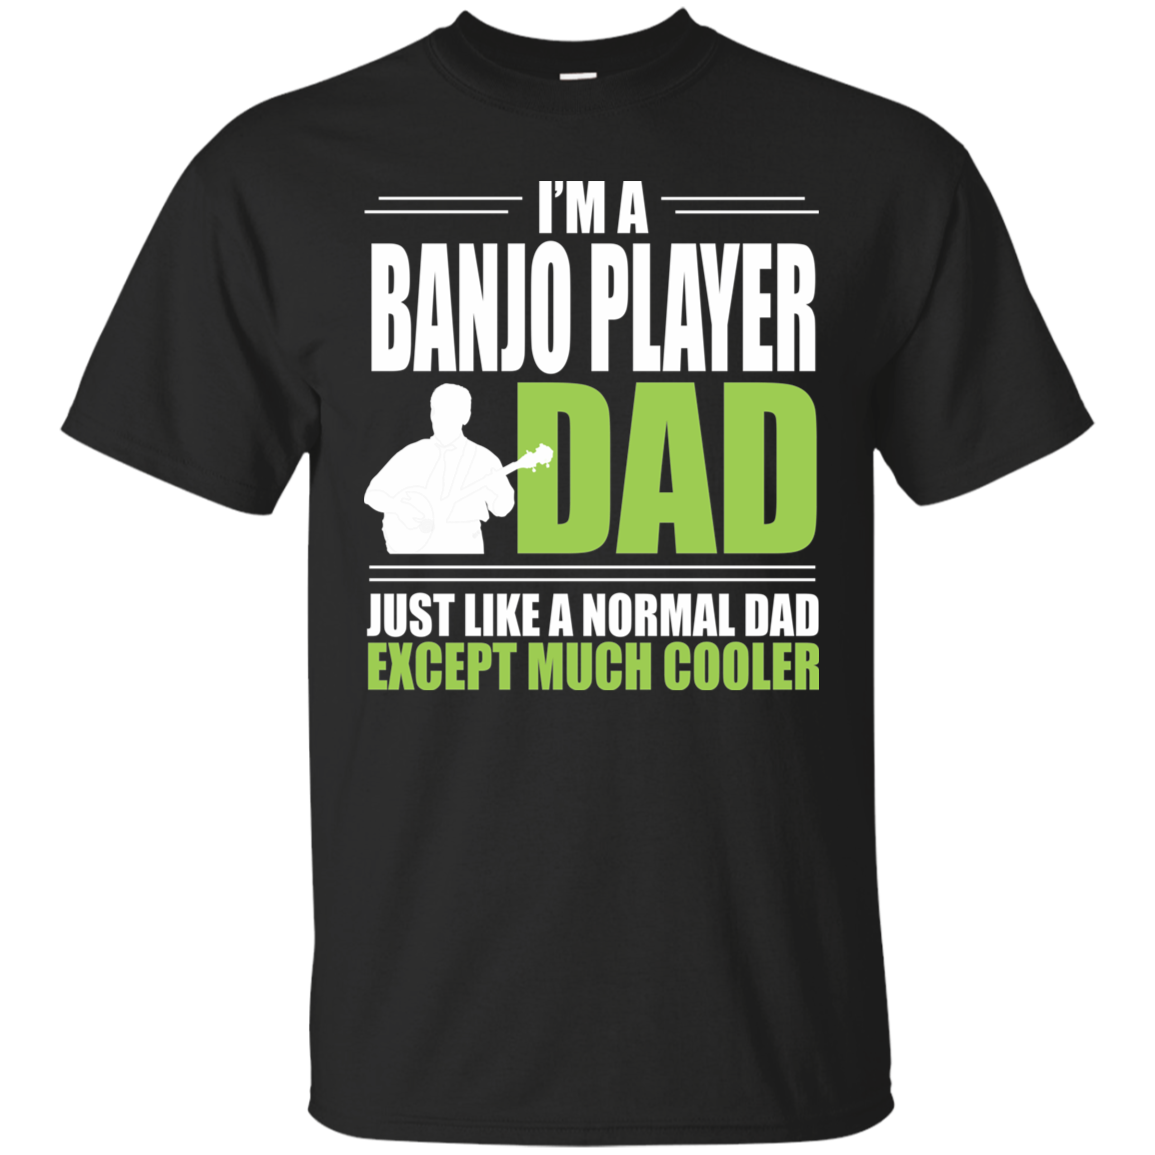 Banjo Gifts Banjo Player Gift For Dad Best Gift Him Gift For Husband Music Teacher Gift Gift For Musicians Cool Dad Gift Shirt With Saying